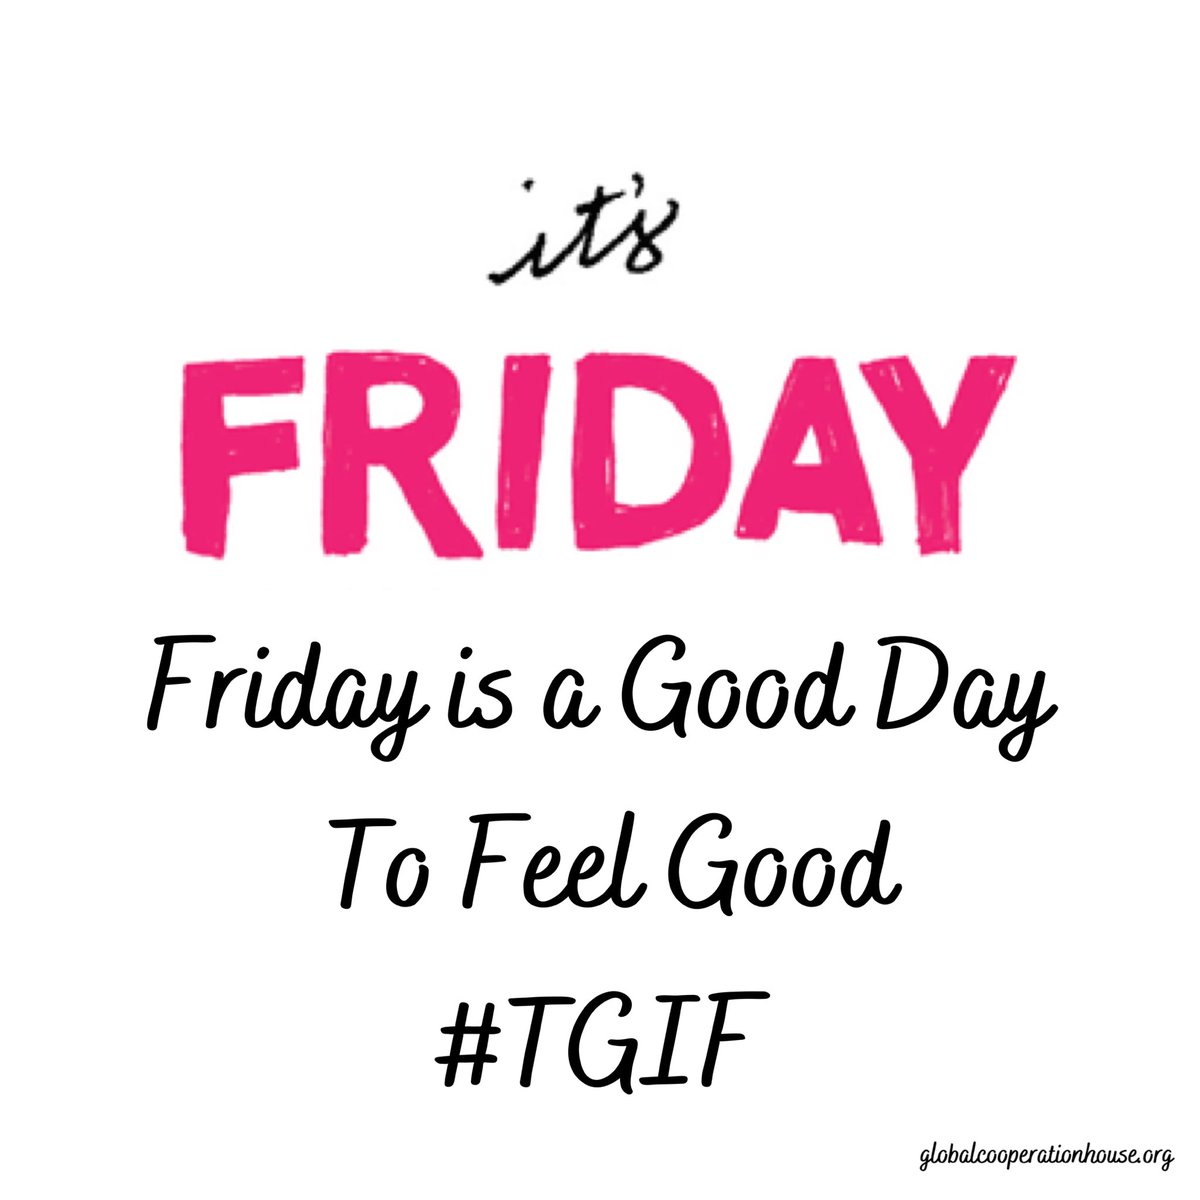 #Friday is a Good Day to feel GOOD, #TGIF! #FeelGoodFriday#attitude #selfcare#RajaYoga #meditation#spirituality #GCH  #StayHomehttp://globalcooperationhouse.orgpic.twitter.com/kUNT8i0EcT